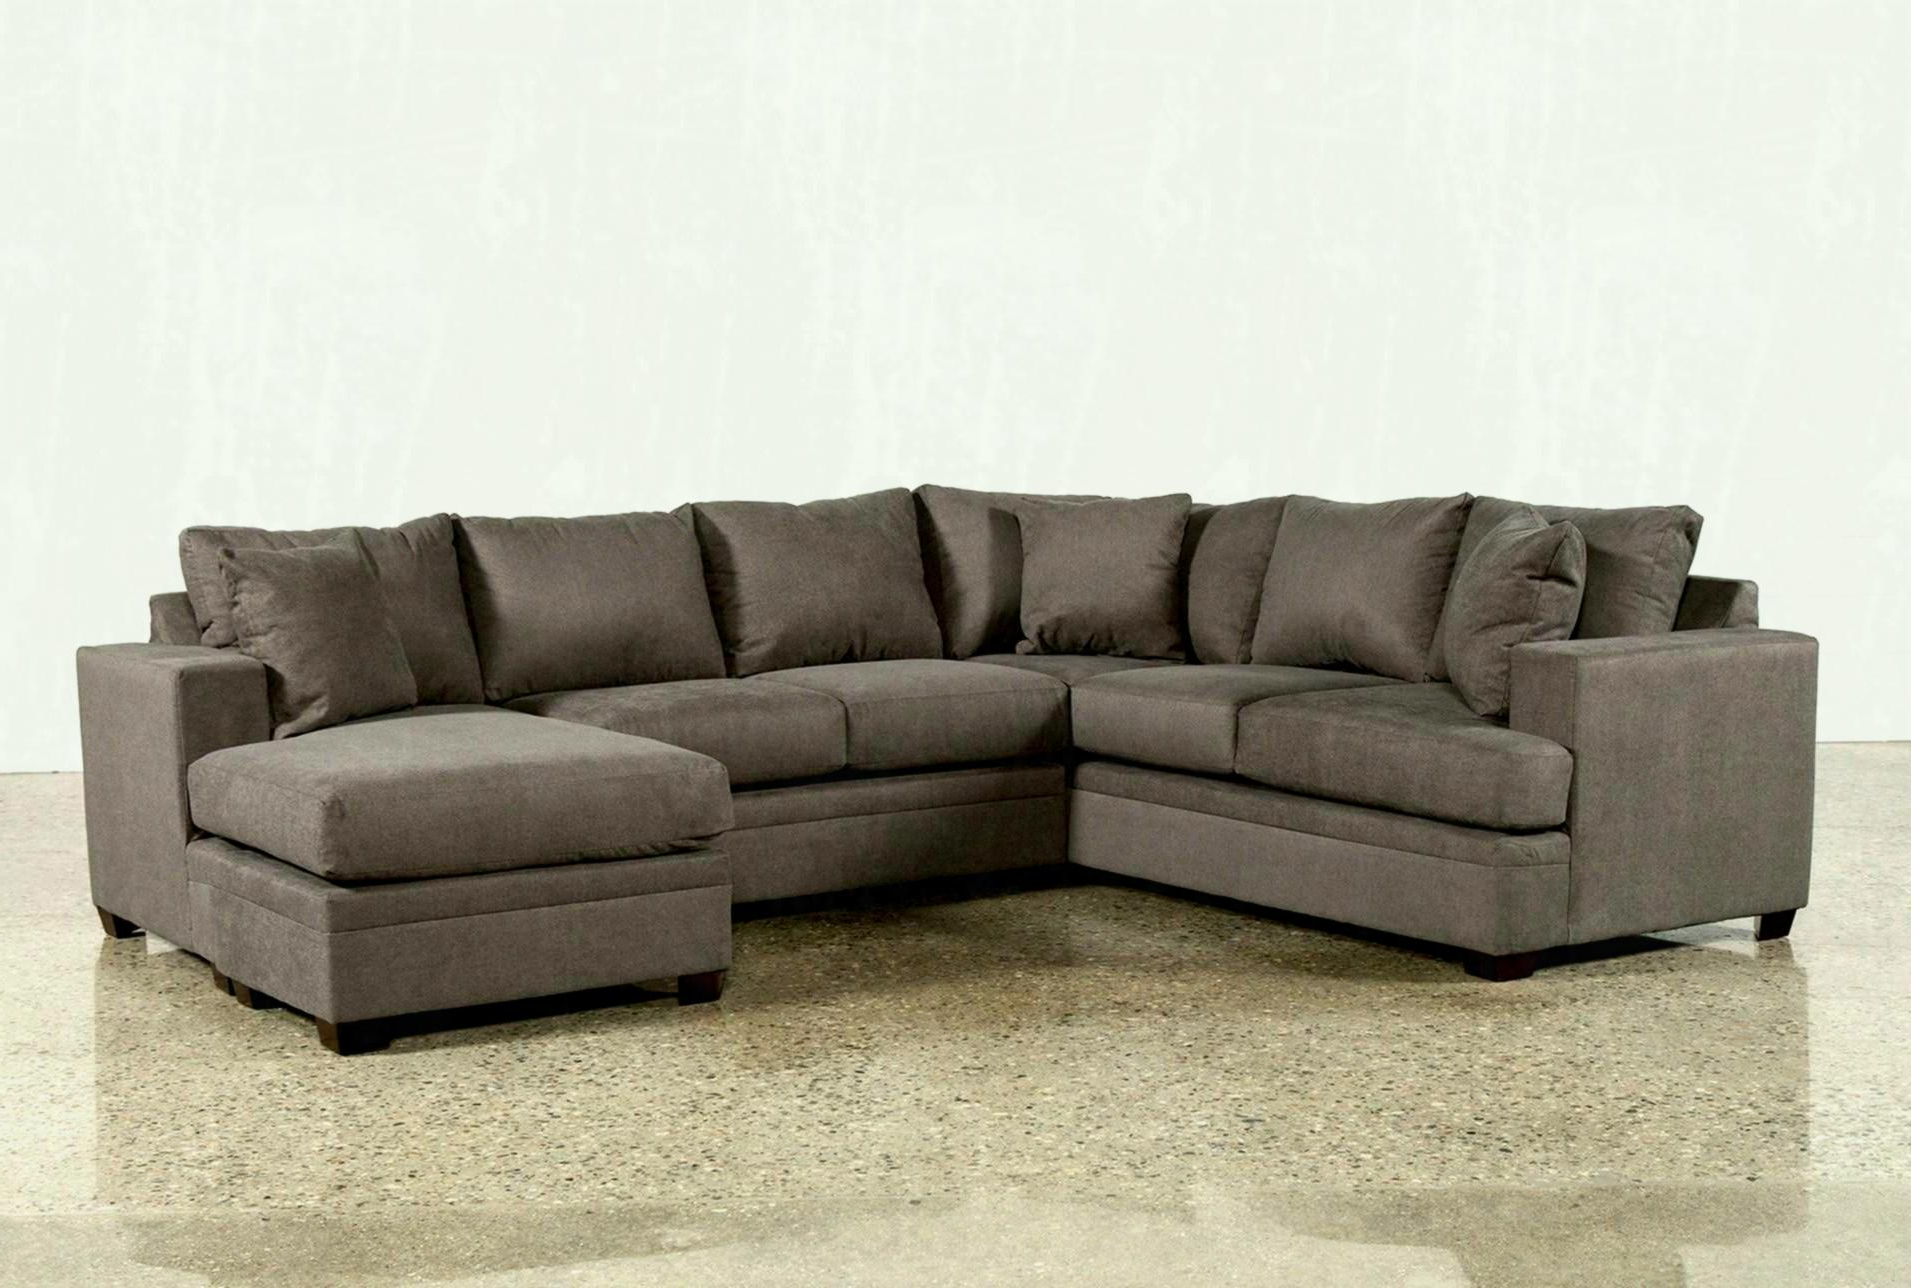 Latest Added To Cart Aquarius Light Grey Piece Sectional W Raf Chaise Within Aquarius Dark Grey 2 Piece Sectionals With Laf Chaise (View 9 of 20)